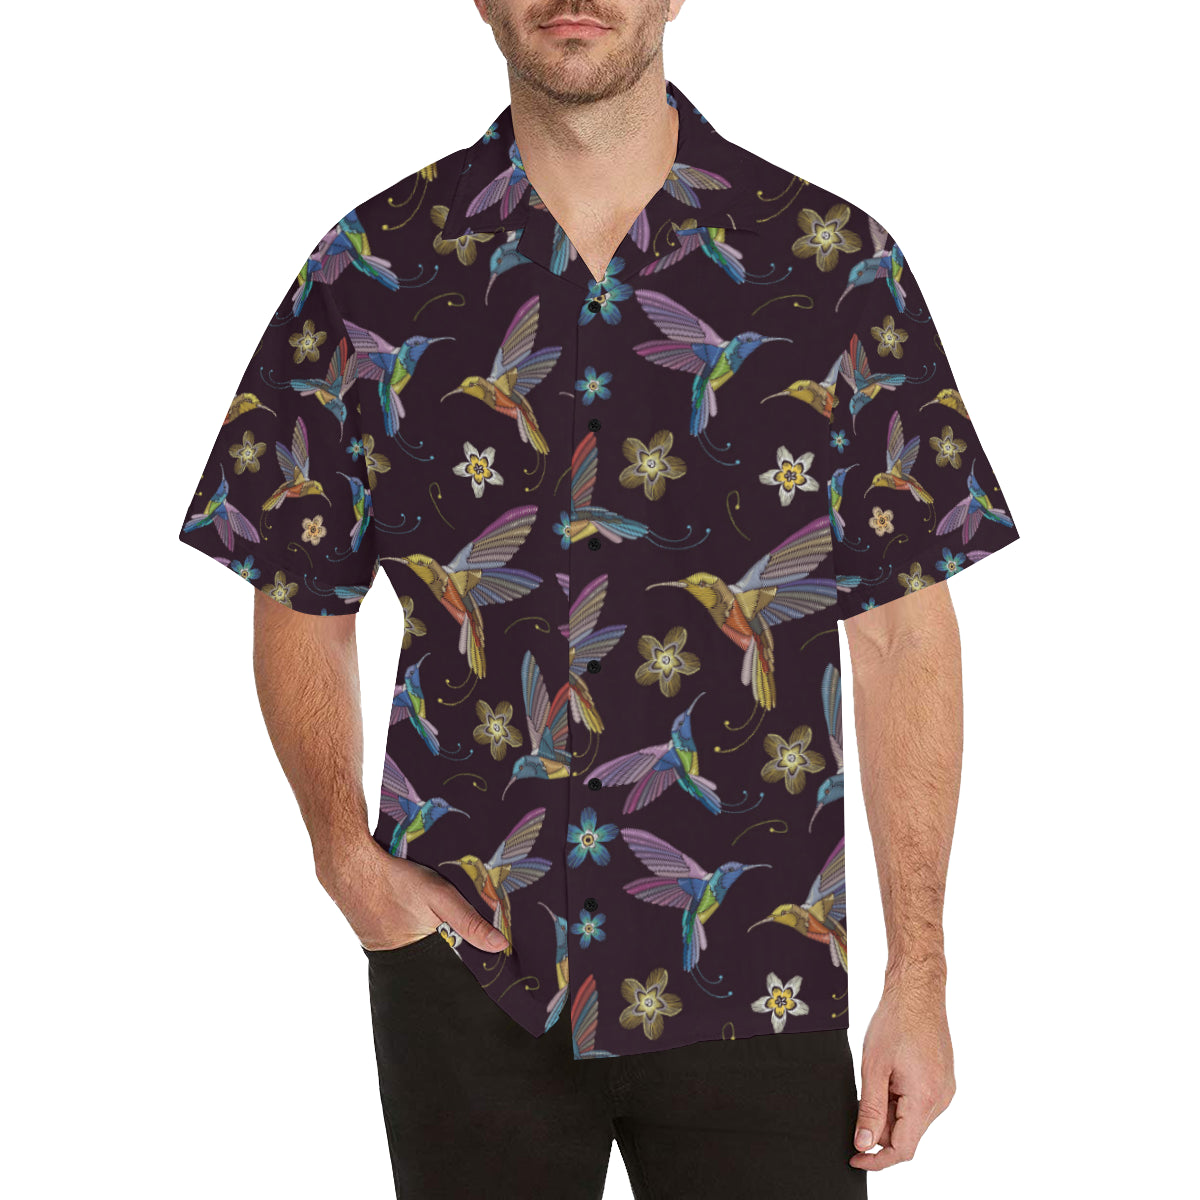 Hummingbird Pattern Print Design 04 Hawaiian Shirt